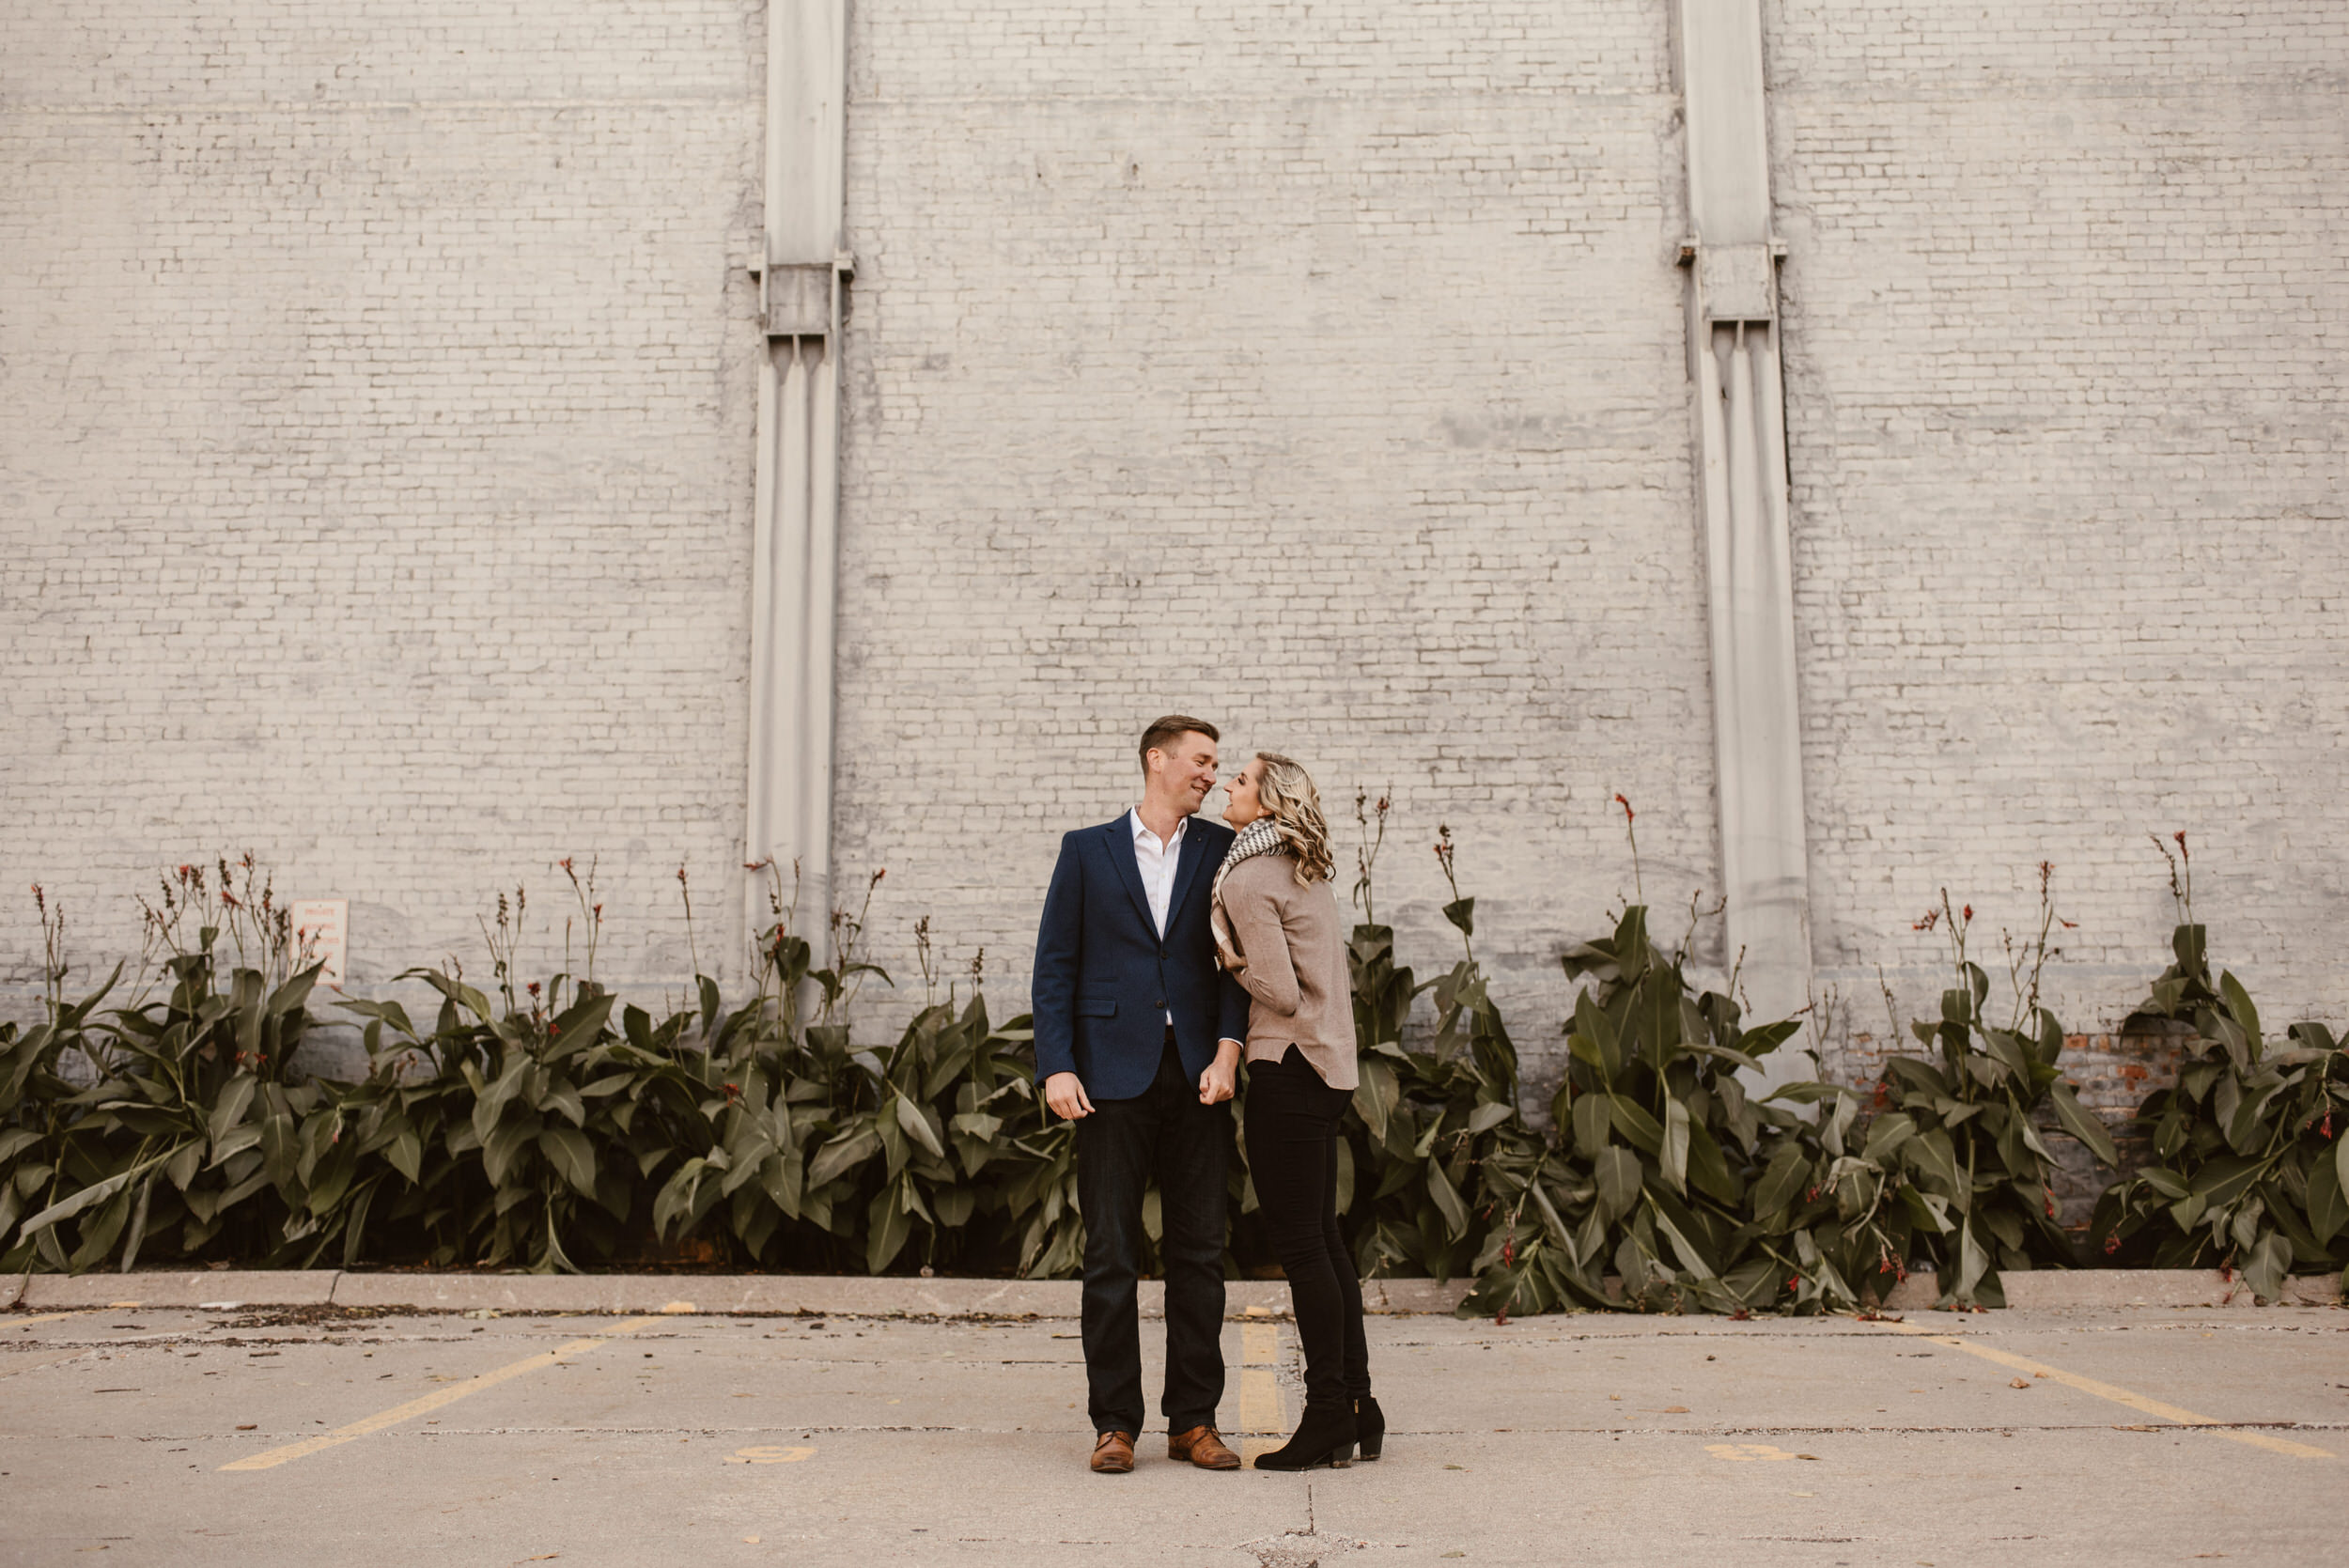 Gene Leahy Mall Omaha Engagement Session Kaylie Sirek Photography 18.jpg